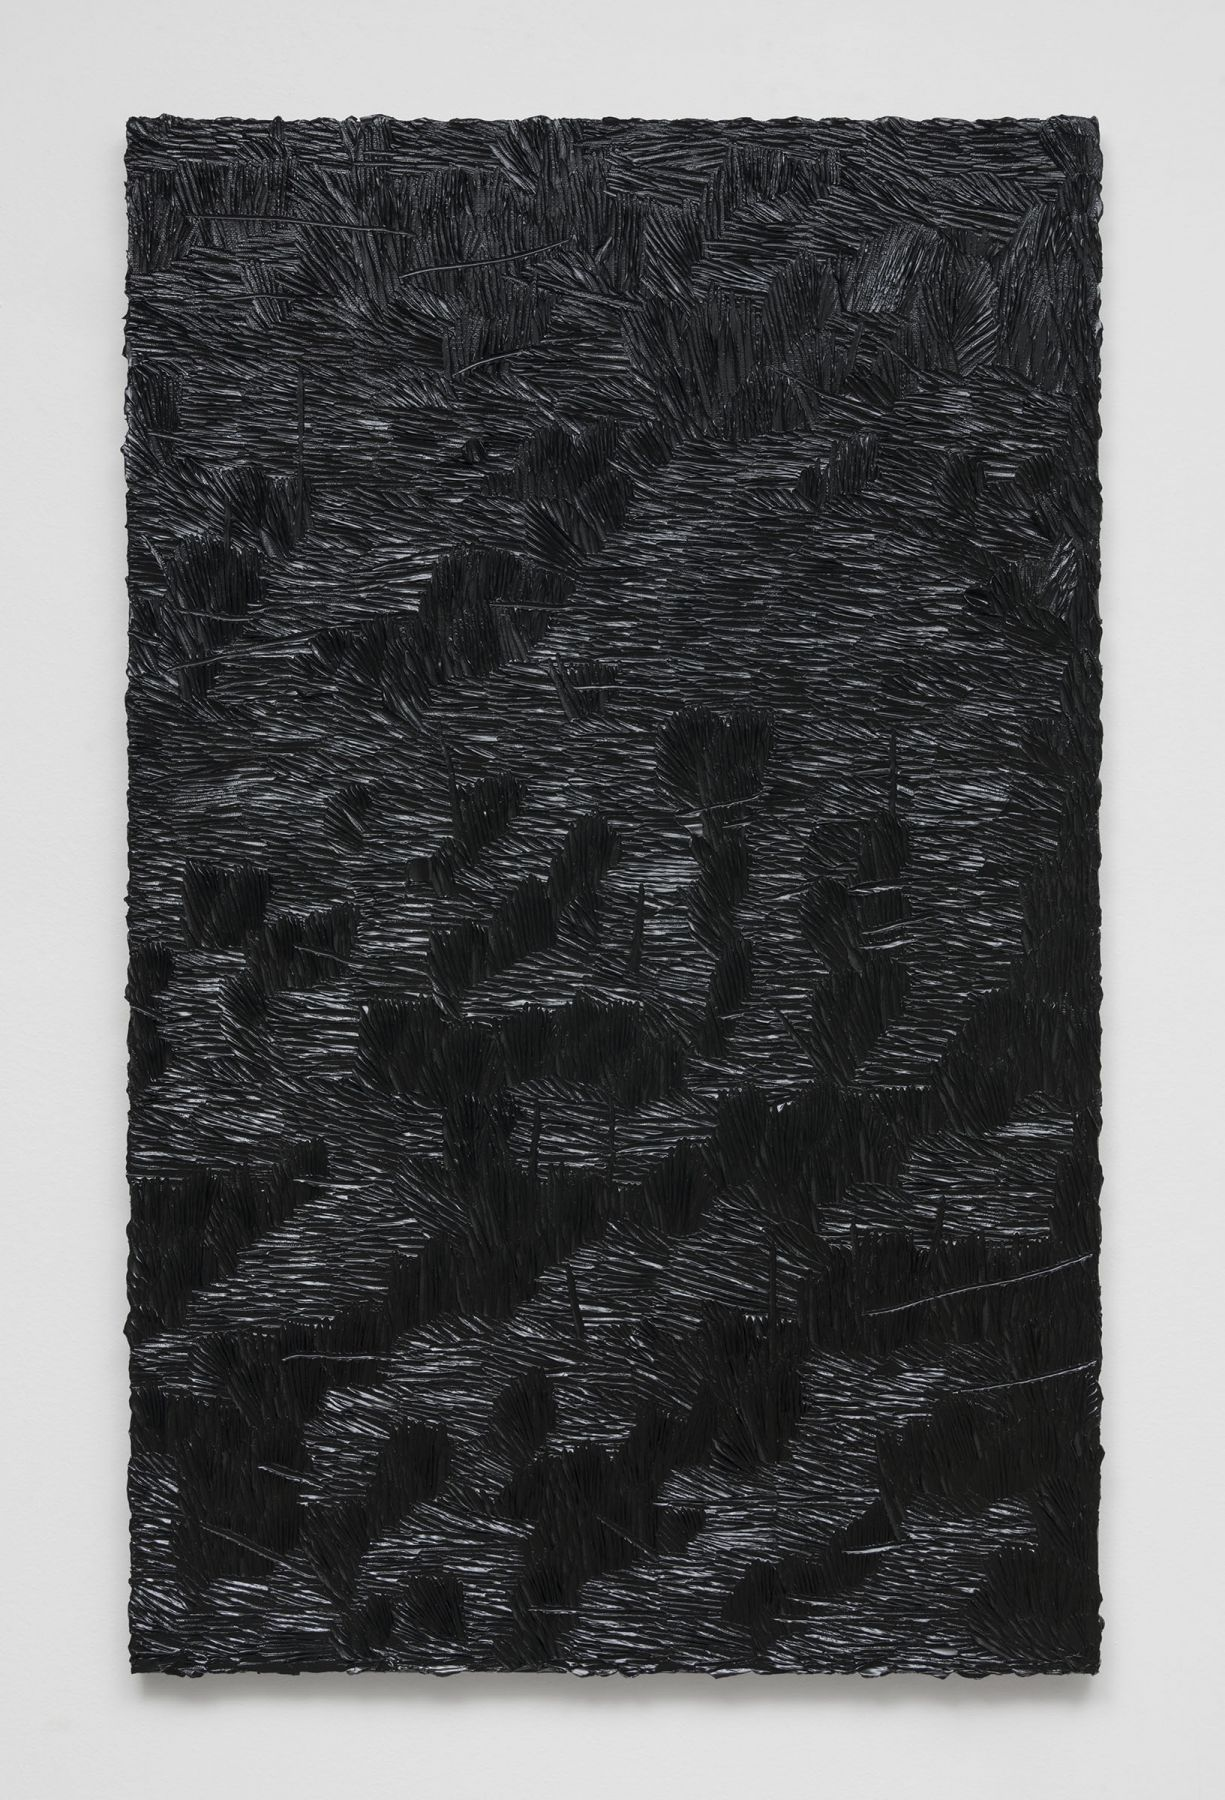 Elegy for whatever (monochrome 5), 2016, Oil on linen